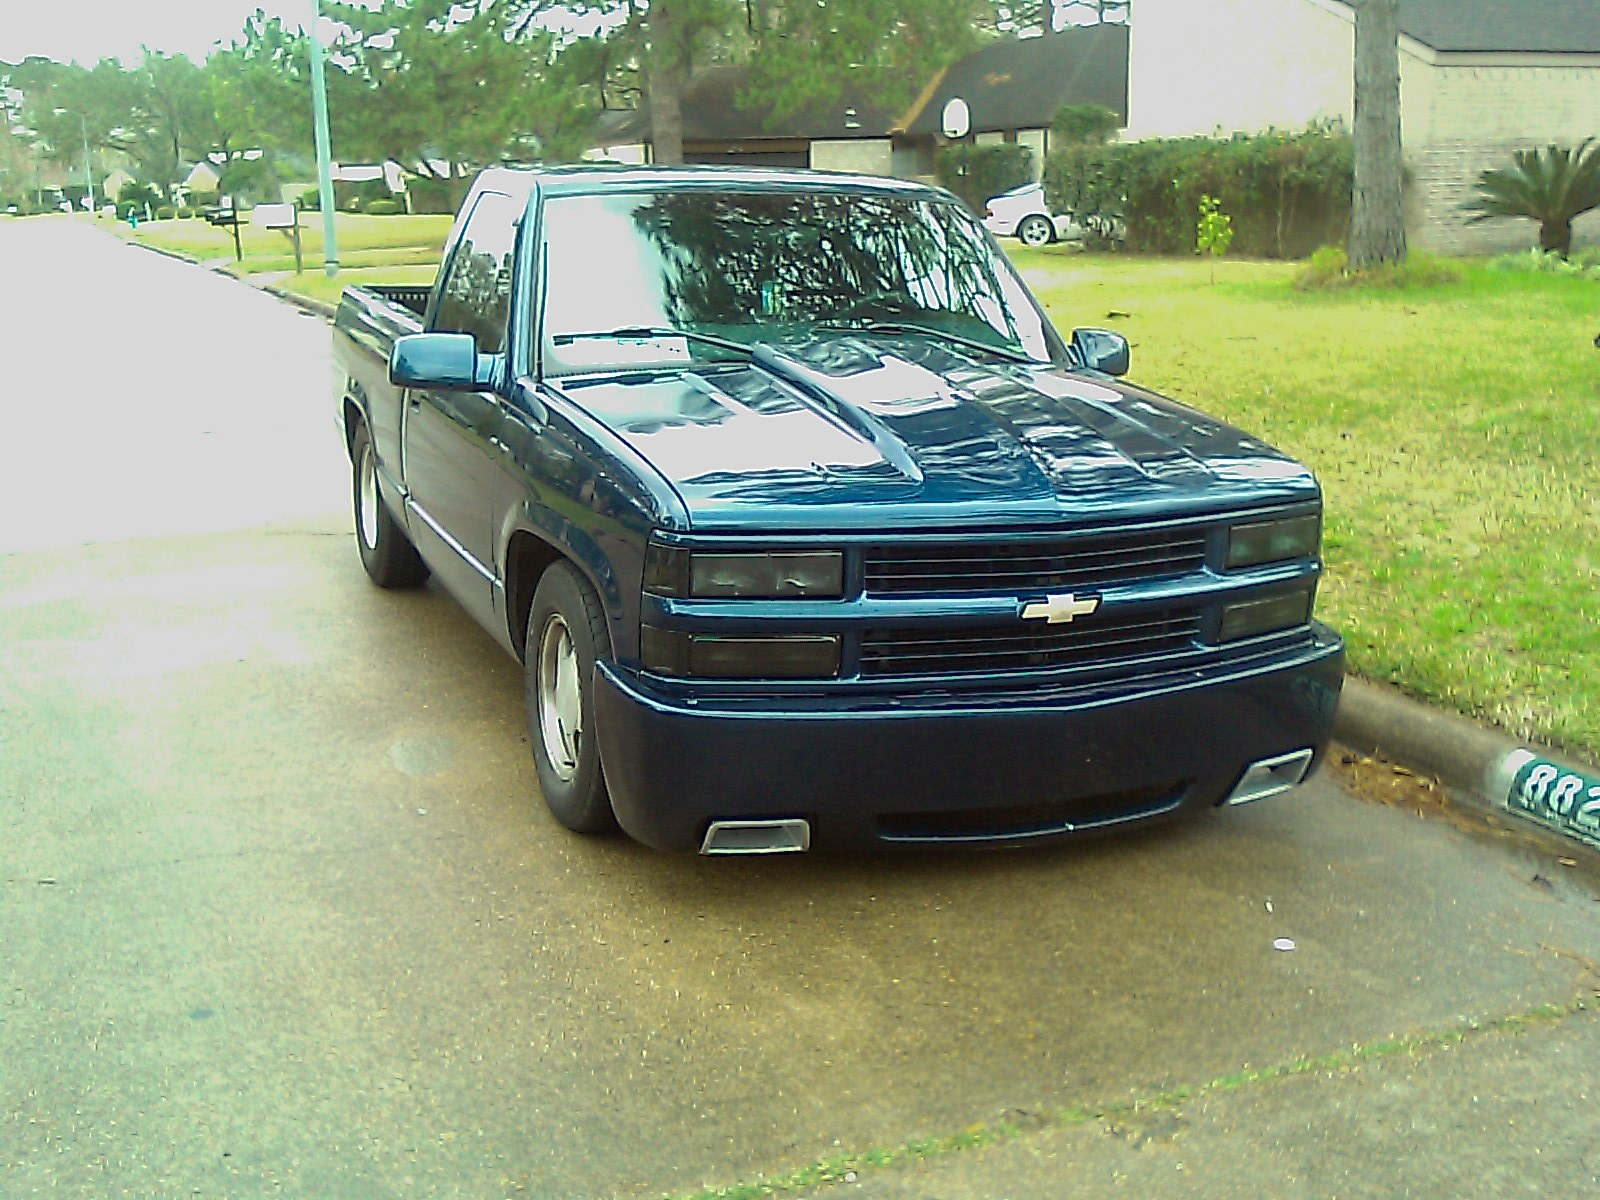 La_SwishaSweet 1998 Chevrolet C/K Pick-Up 14023744